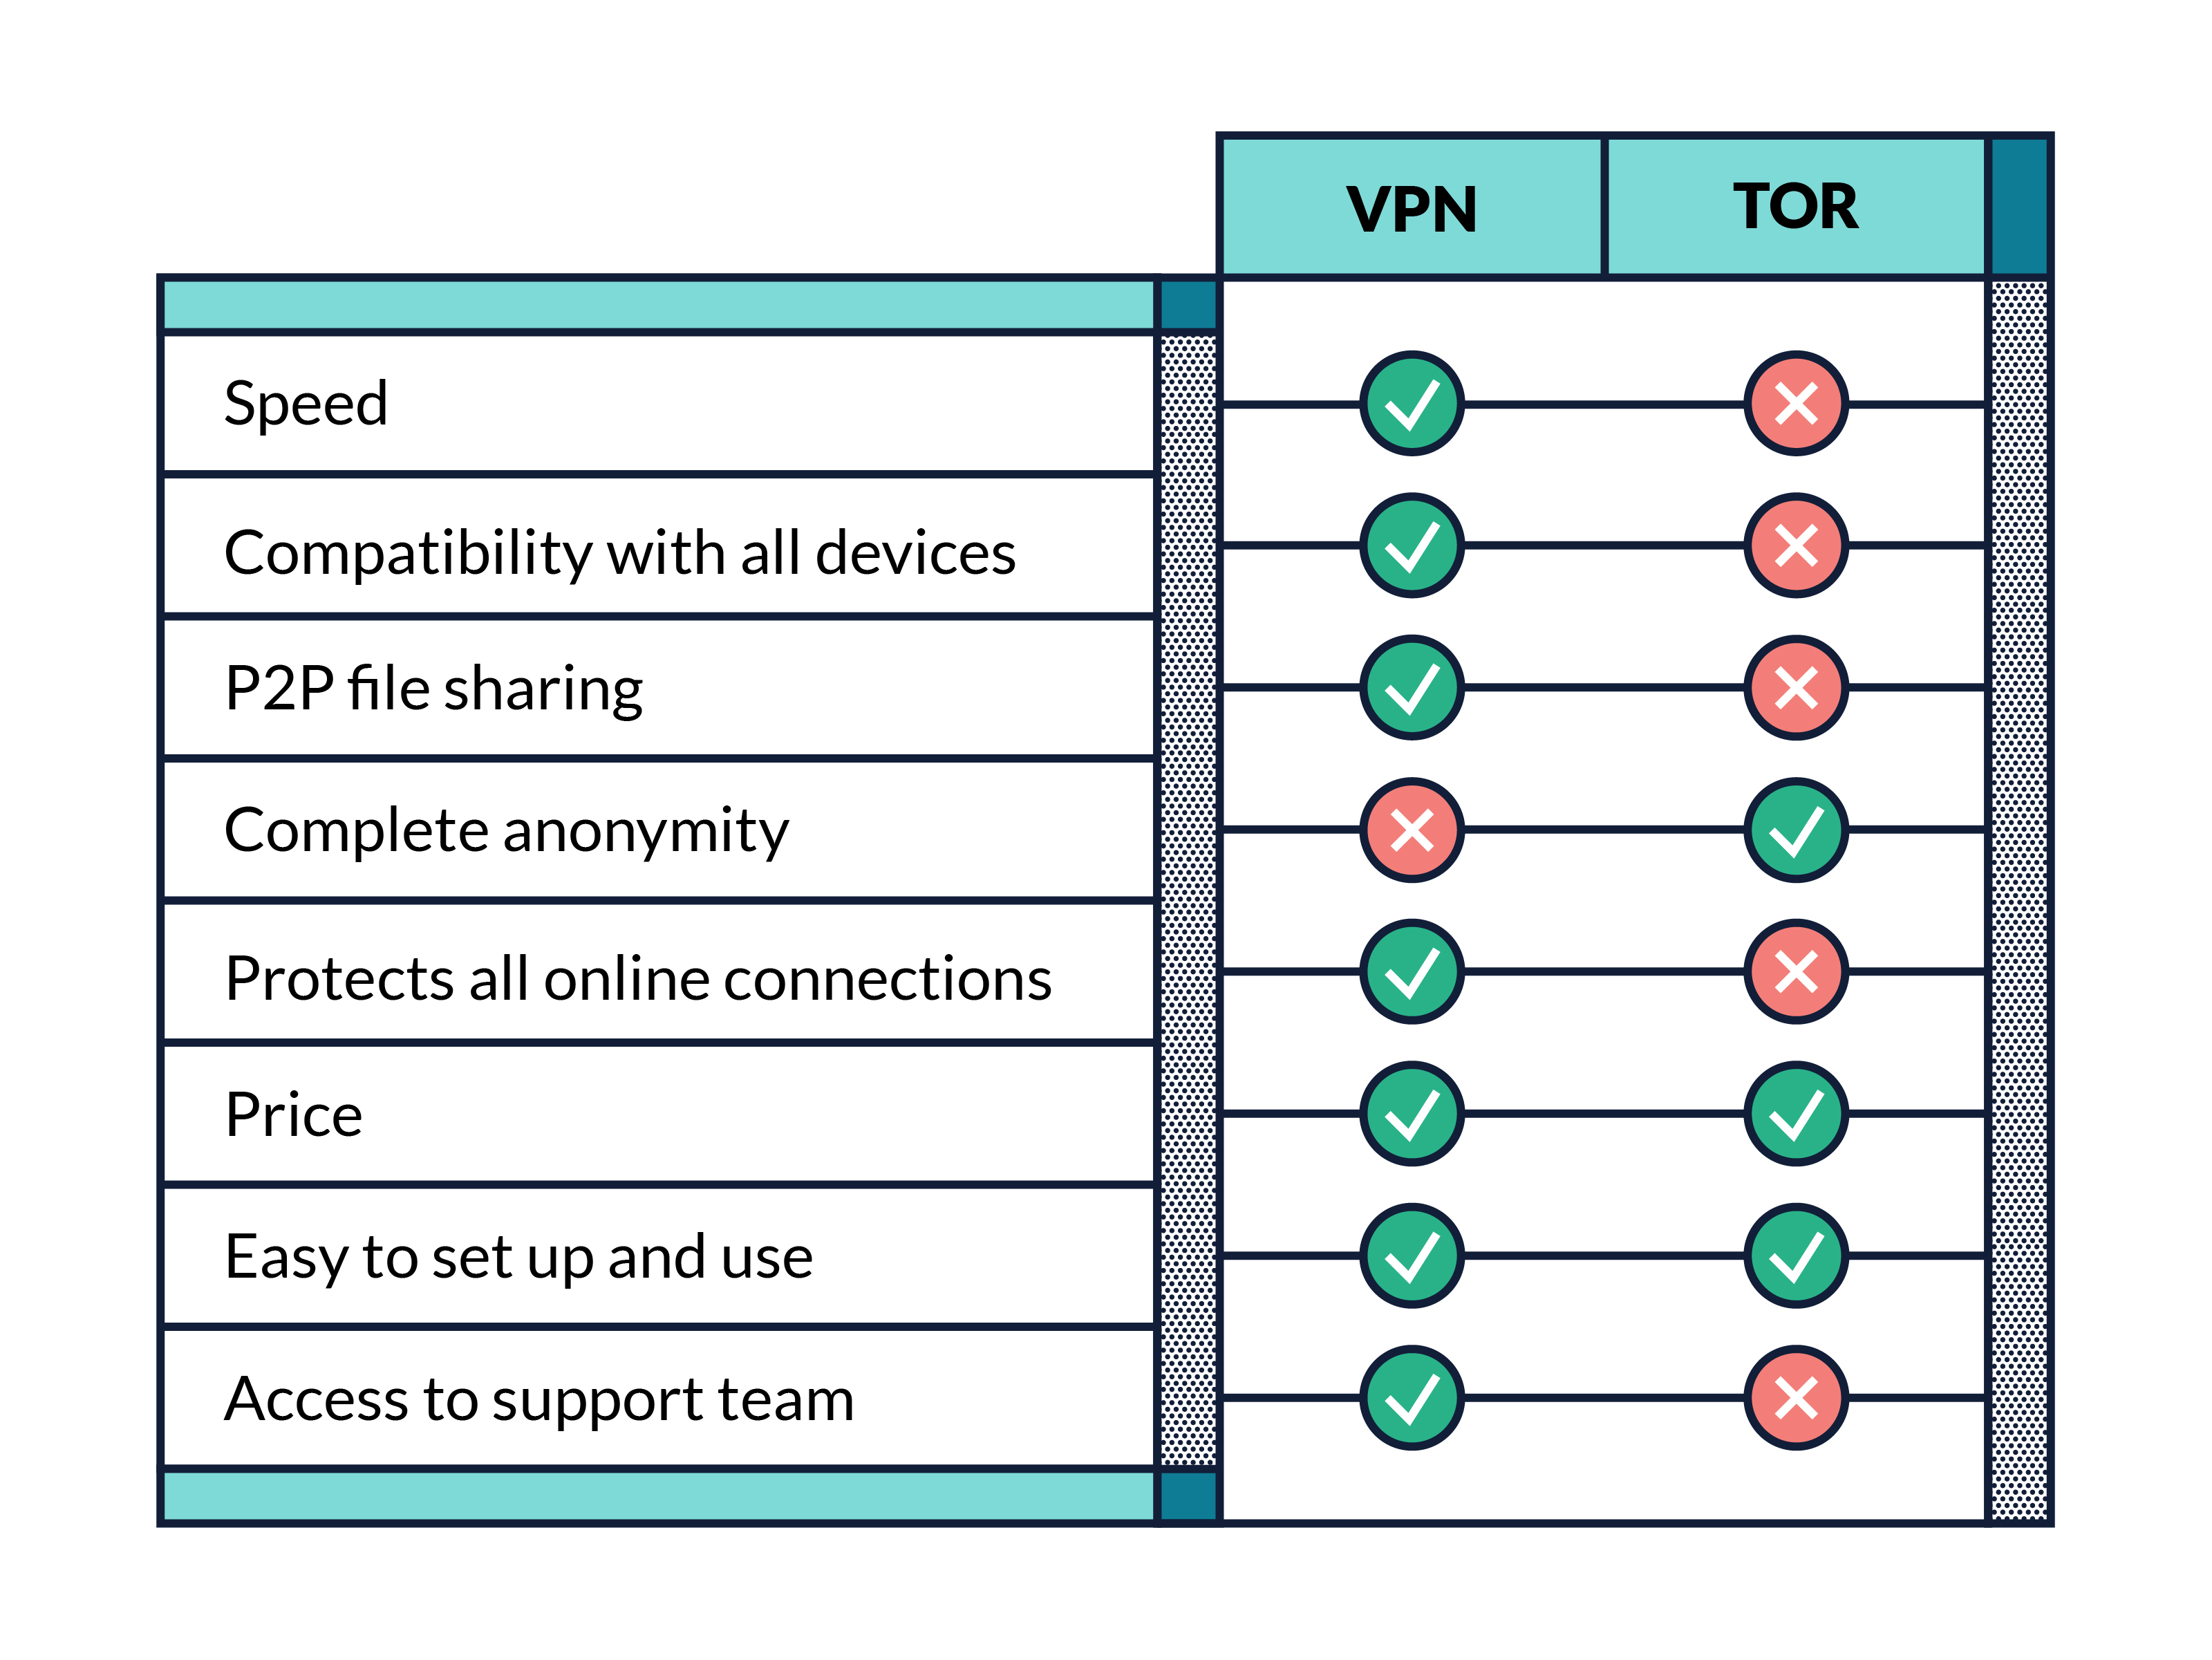 Tor vs. VPN-kaavio